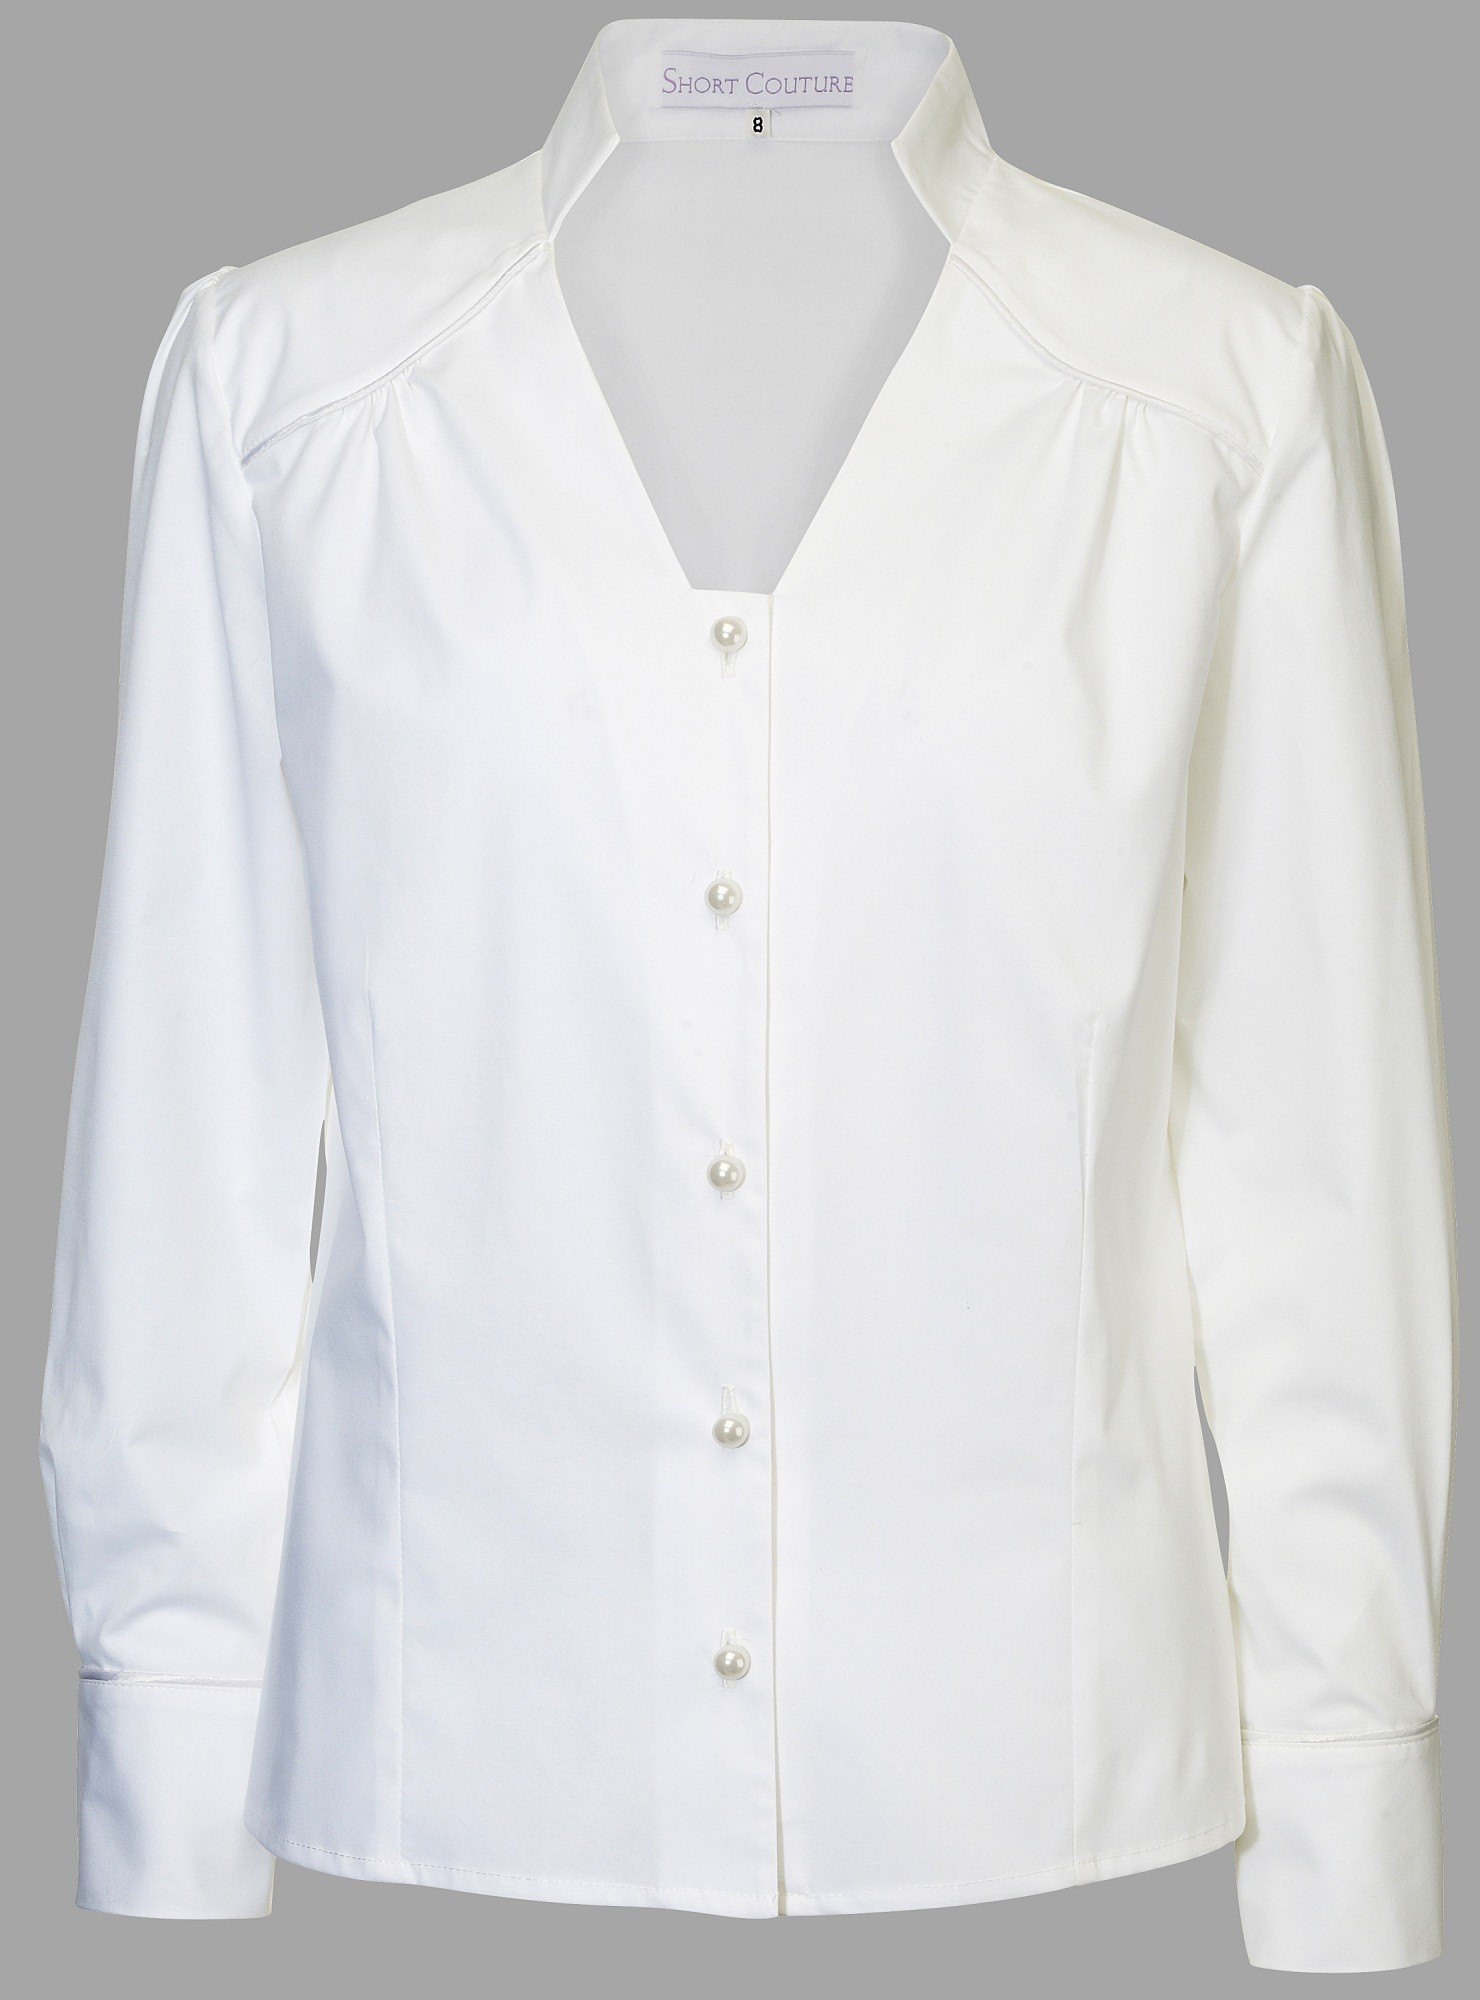 Petite White Blouse Fitted for Short Women